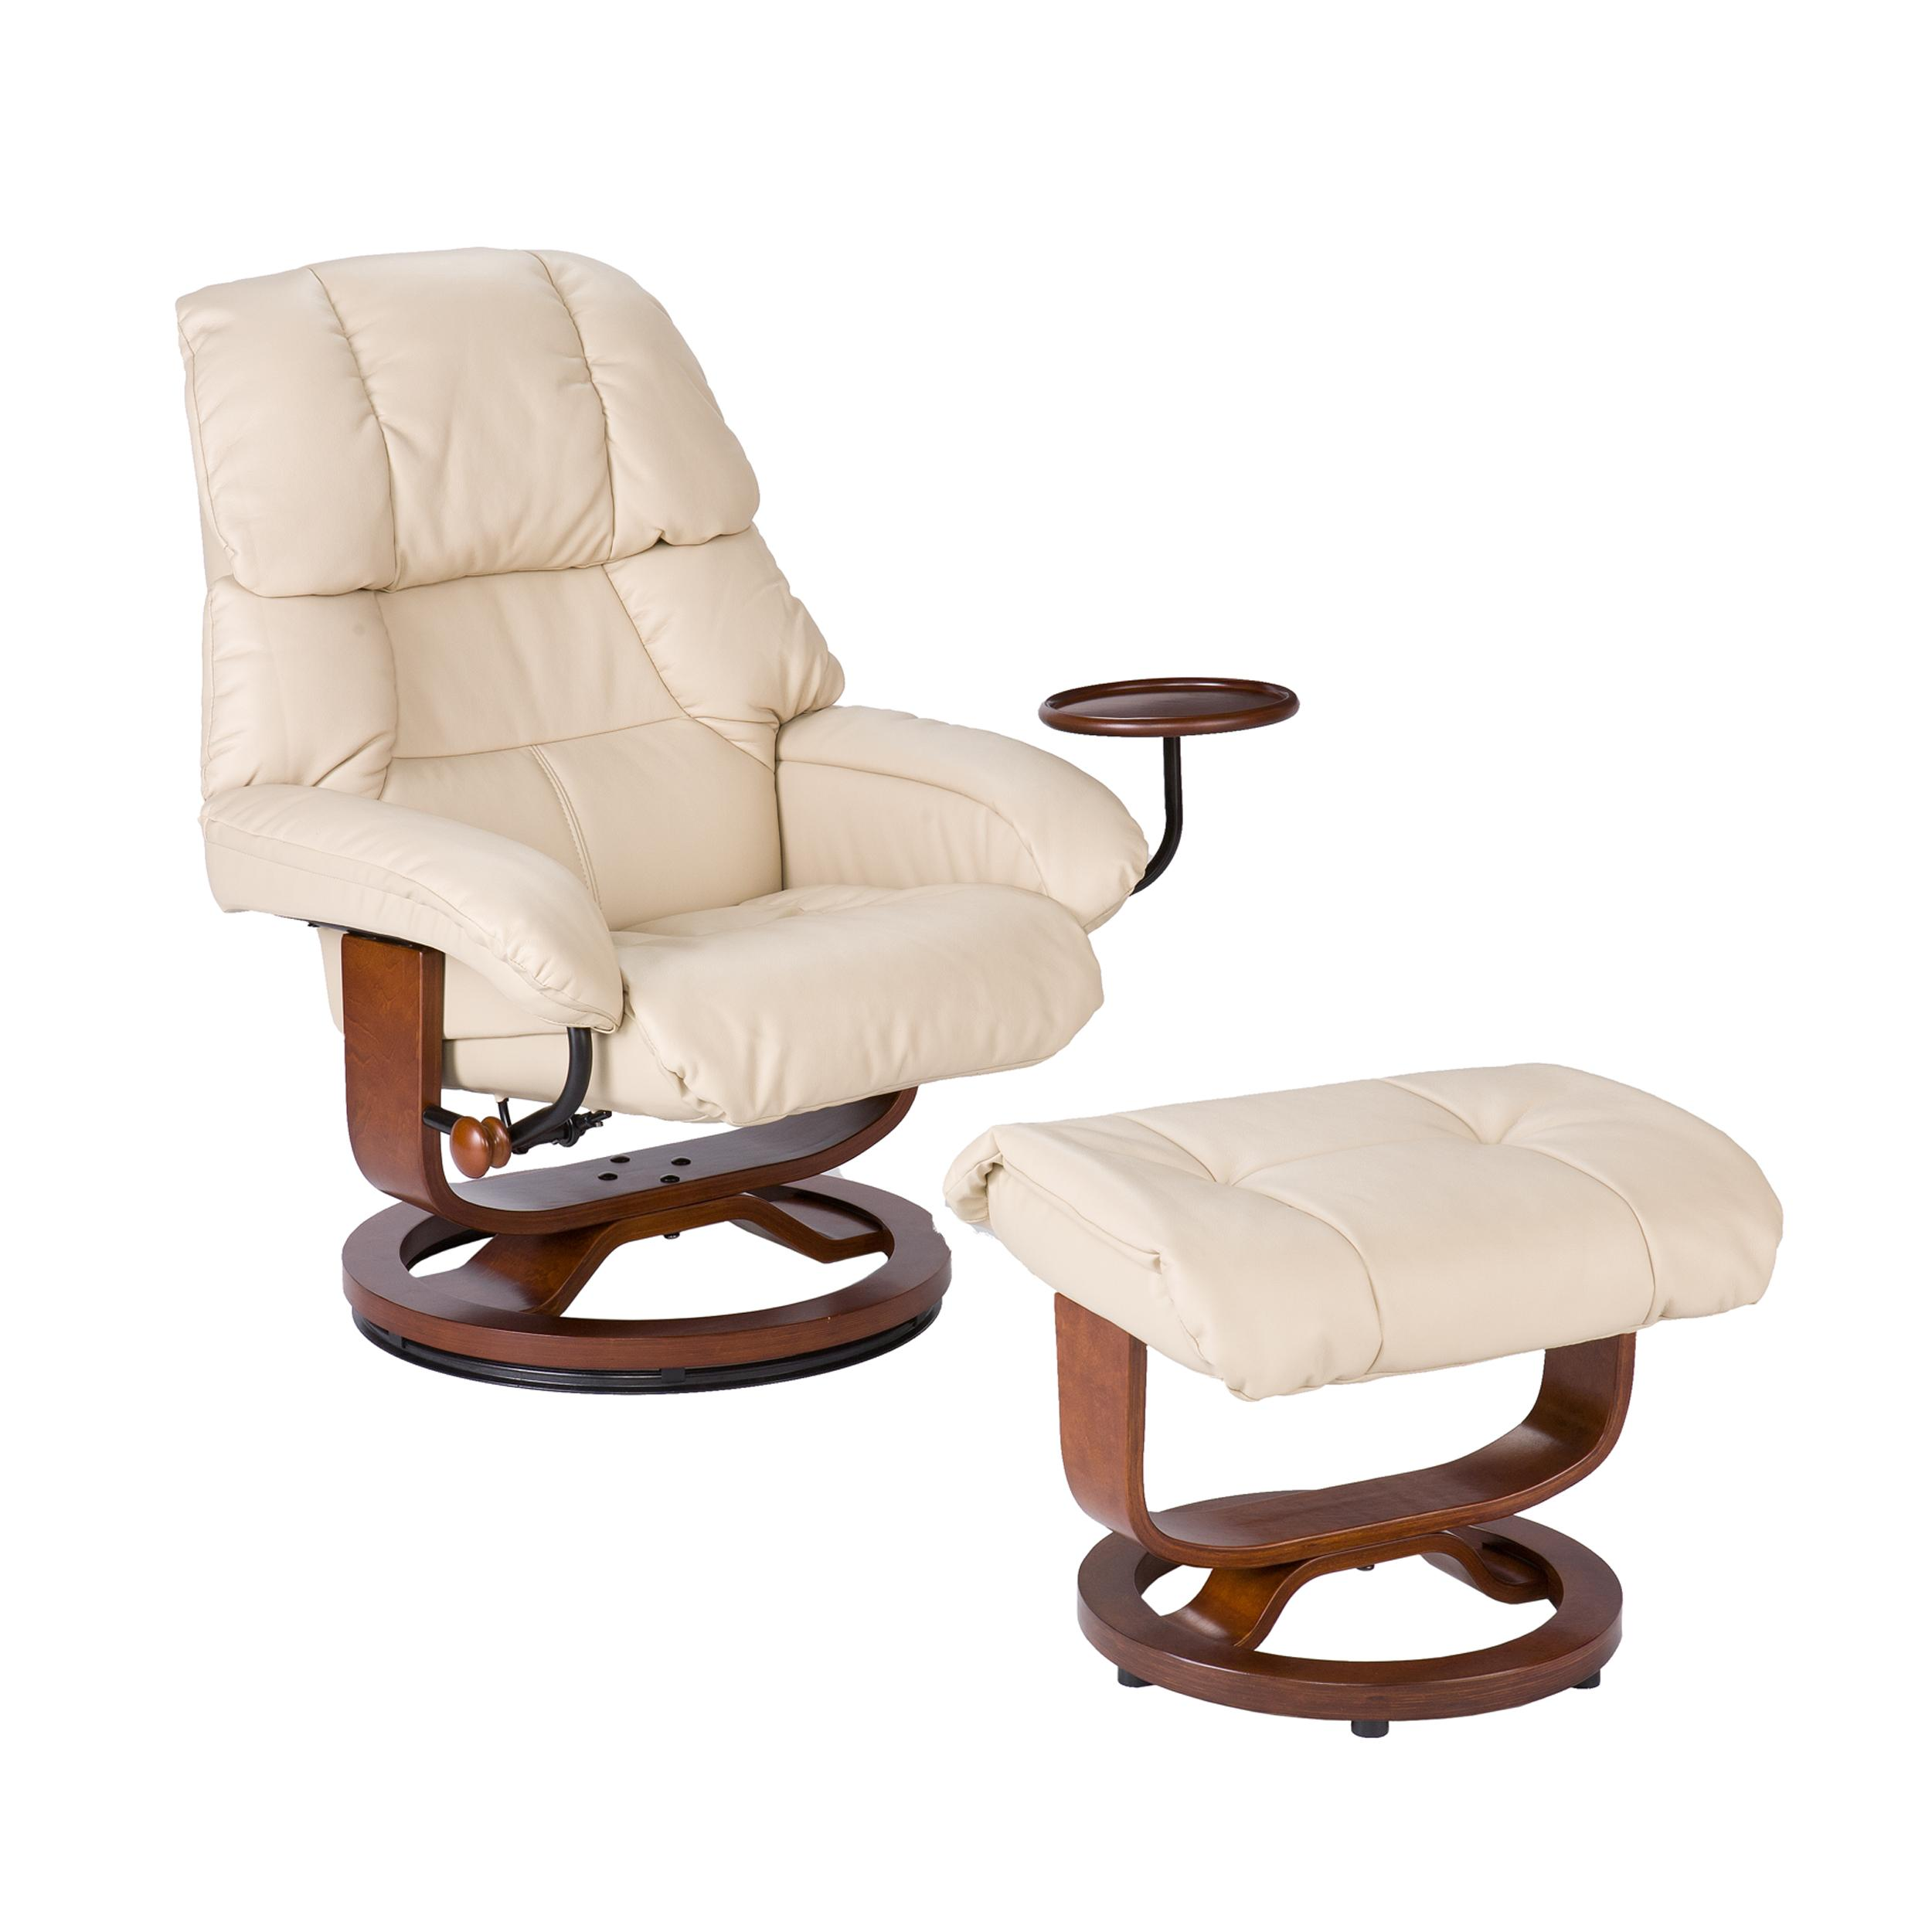 gg ff furniture curv bt base contemporary leather recliner with flash w ottoman maple wood brown swiveling bn swivel